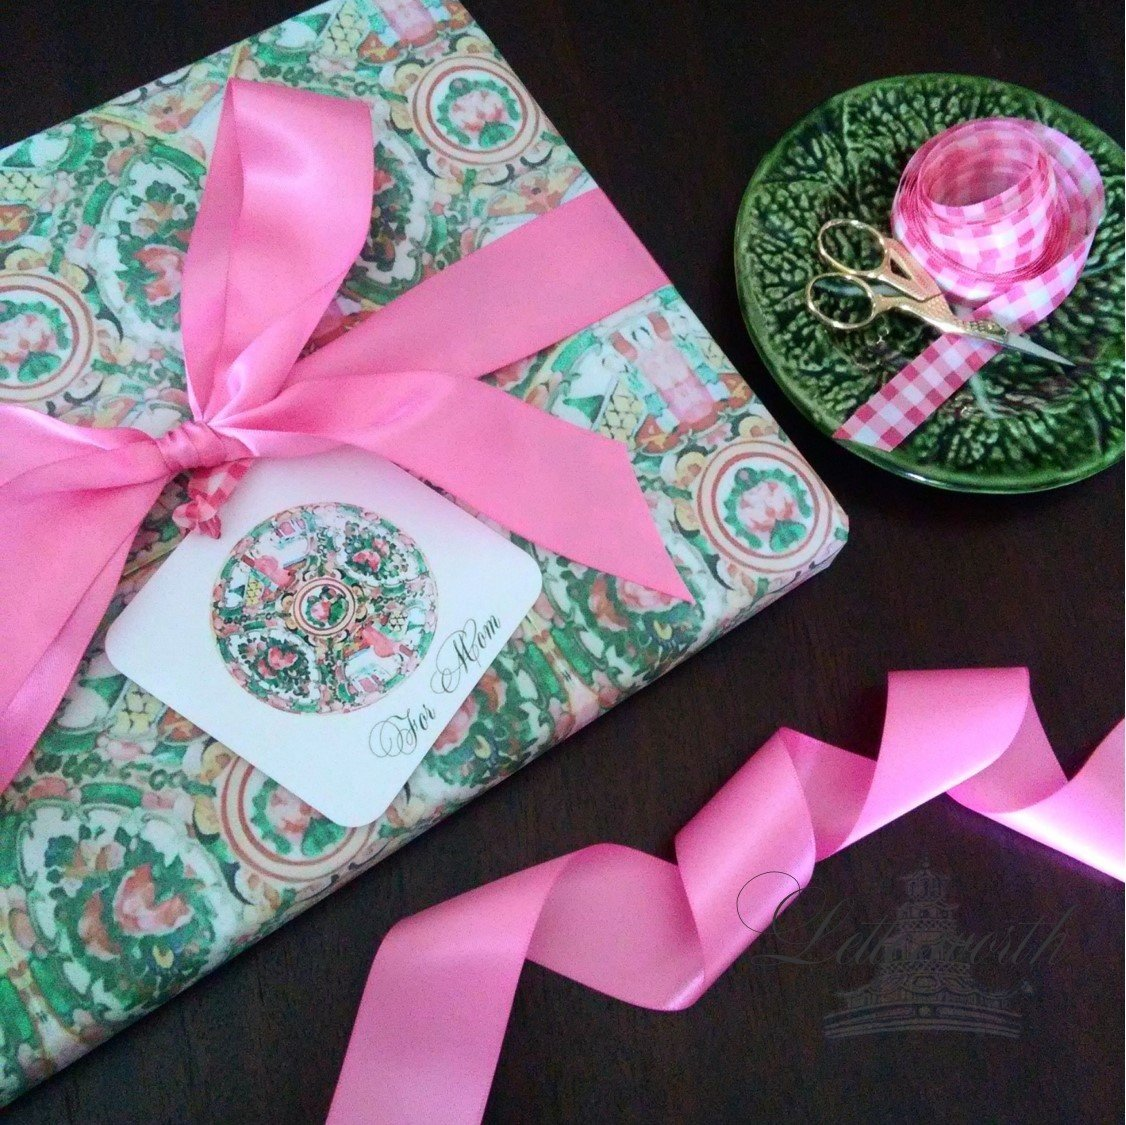 Rose Medallion Chinoiserie Gift Wrapping Paper by Letterworth